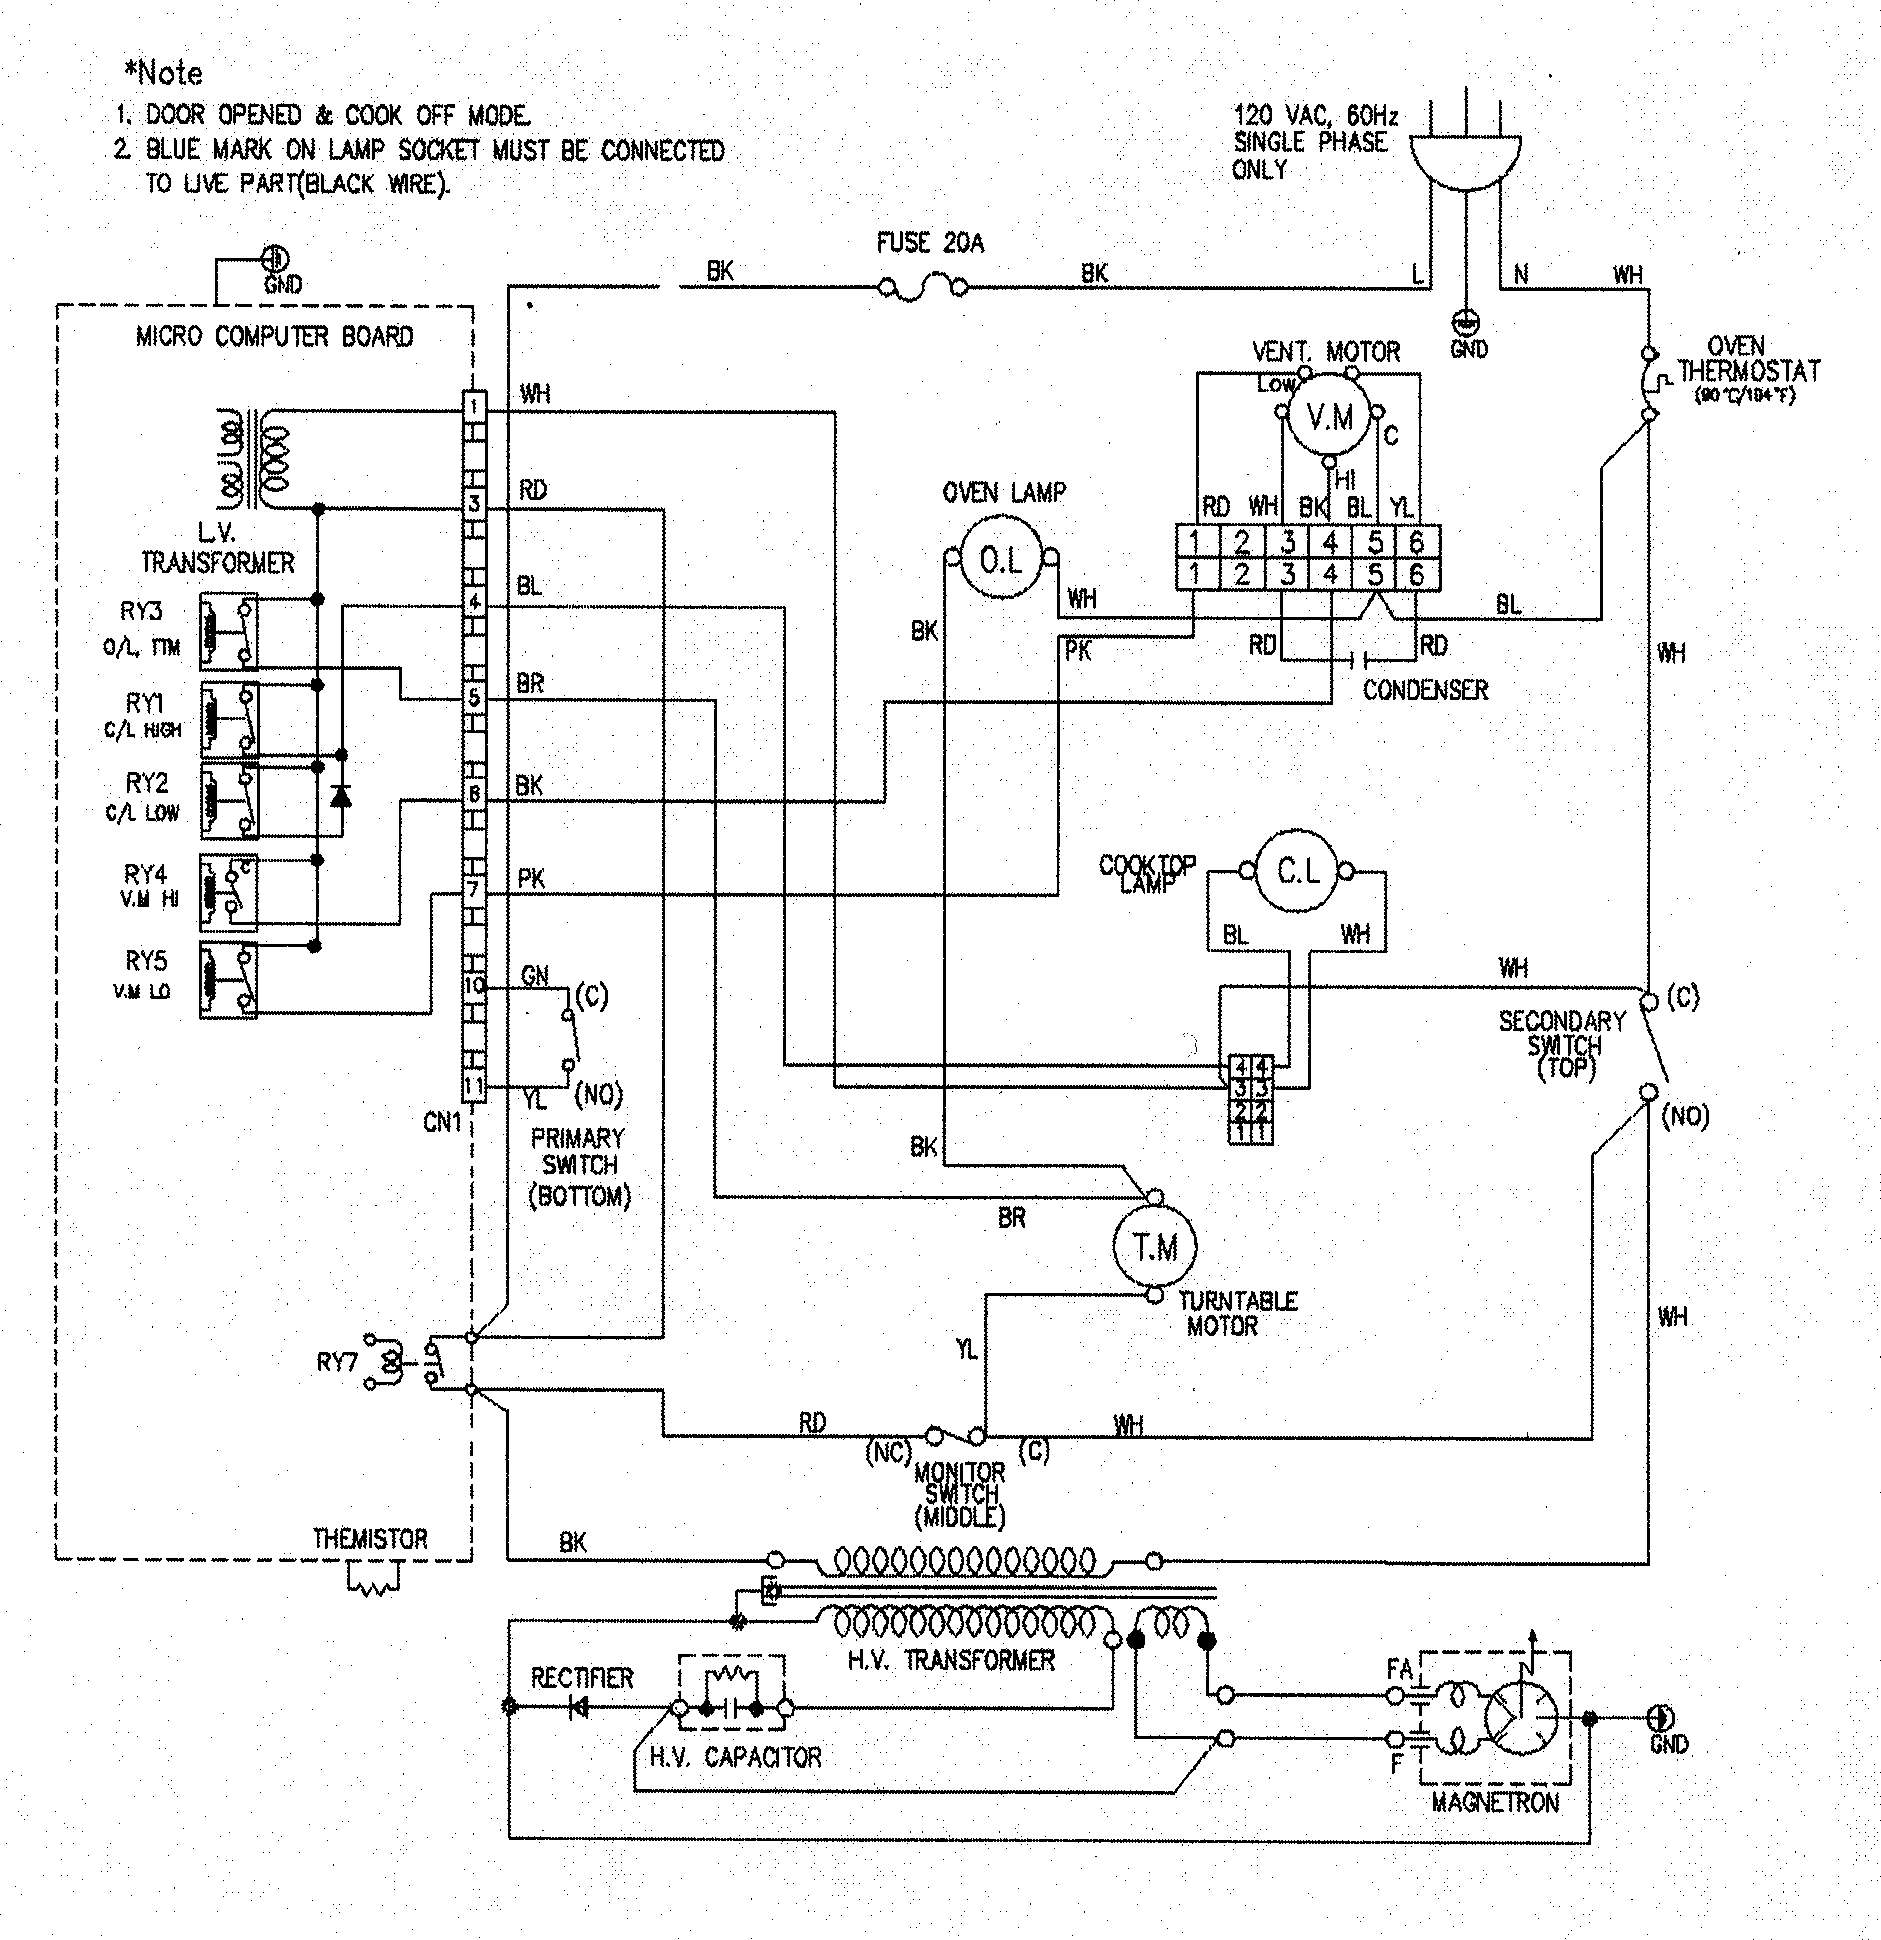 22r Wiring Diagram - Wiring Diagram T2 wiring diagram for light switch Wiring Diagram T2